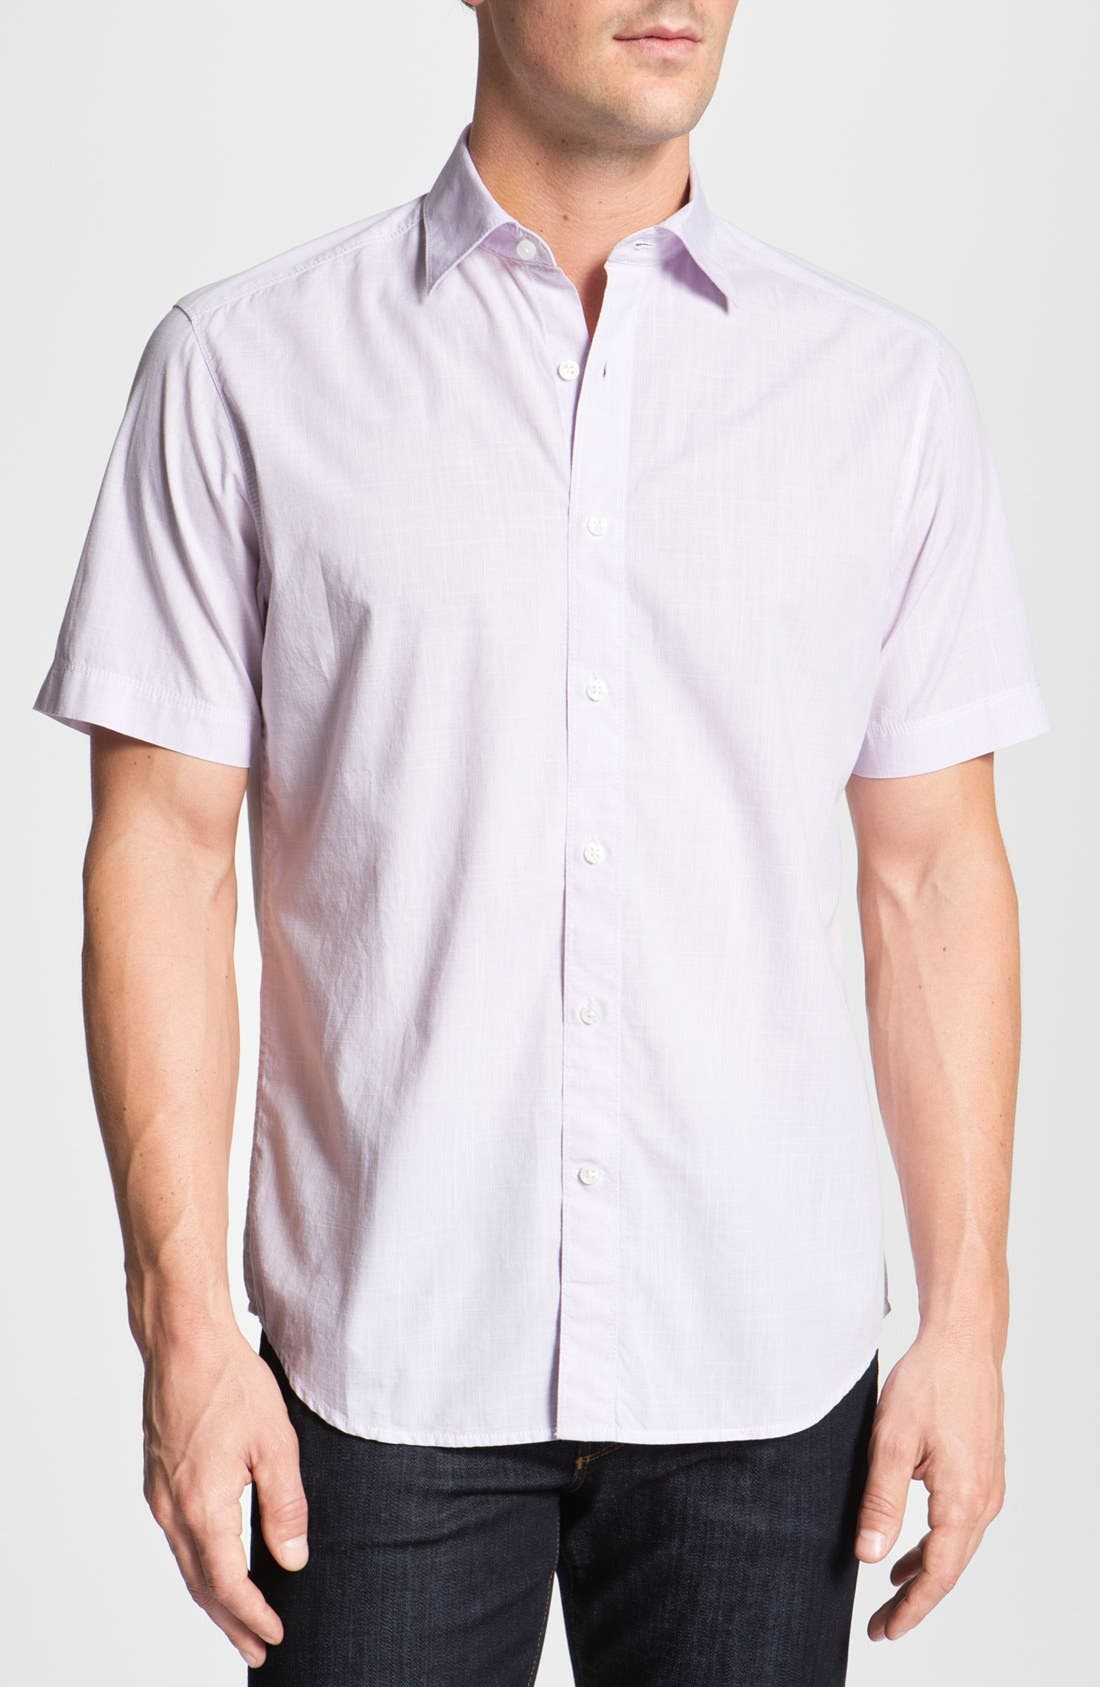 Alternate Image 1 Selected - James Campbell 'Barto' Sport Shirt